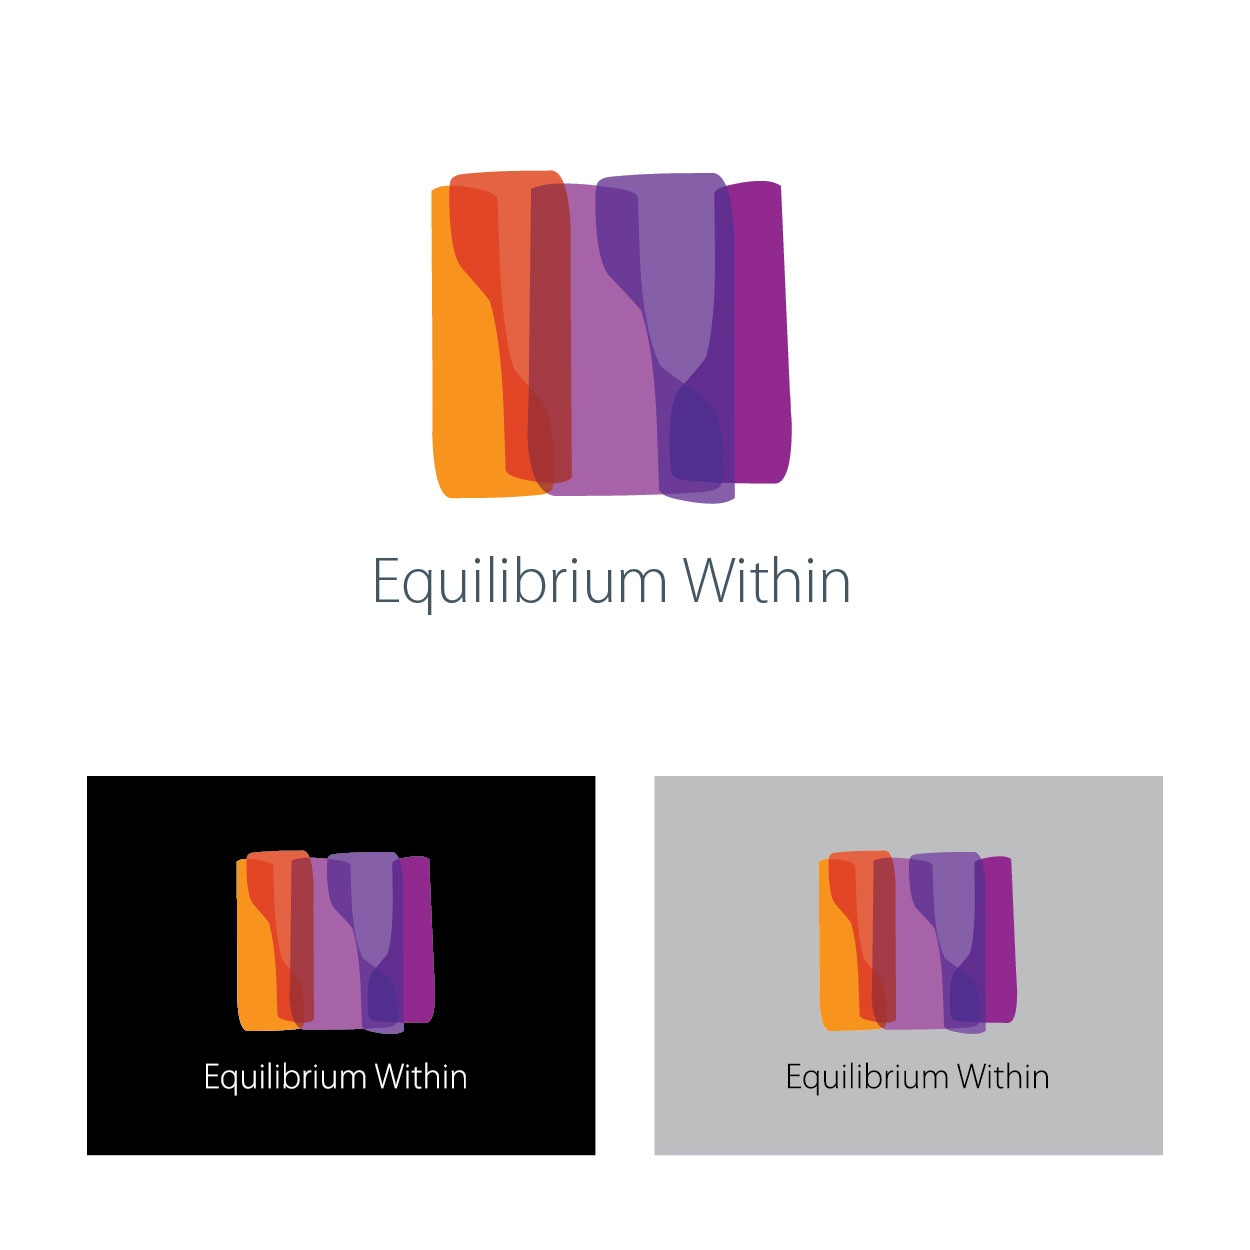 Logo Design by josephope - Entry No. 5 in the Logo Design Contest Equilibrium Within - Living Jewelry.